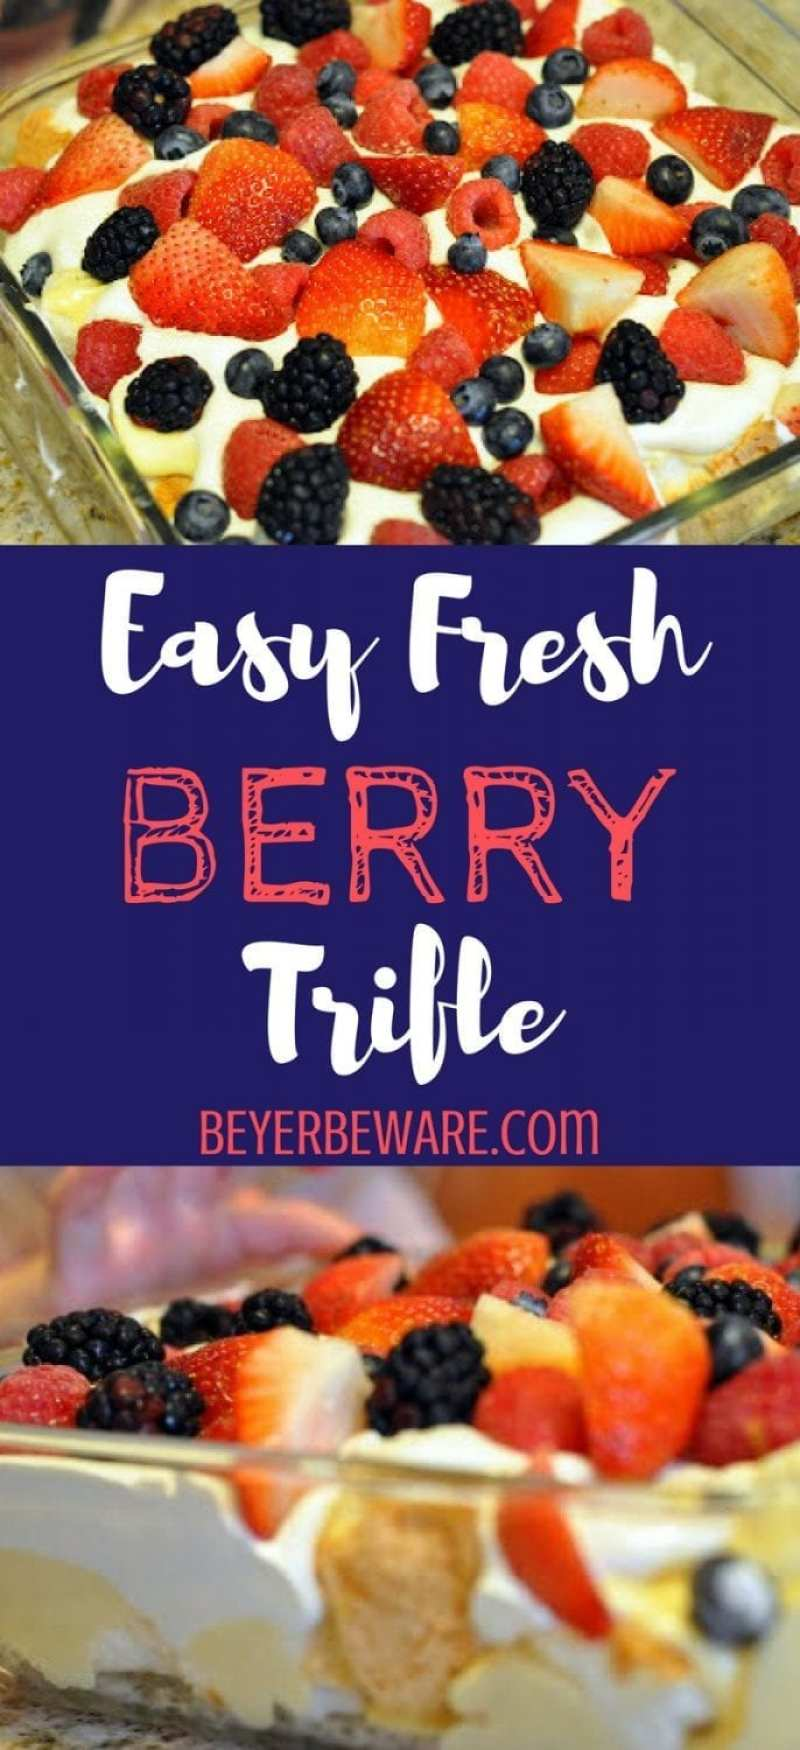 This easy fresh berry trifle recipe just combines angel food cake, vanilla pudding & Cool Whip topped with fresh berries to make a light summer dessert.